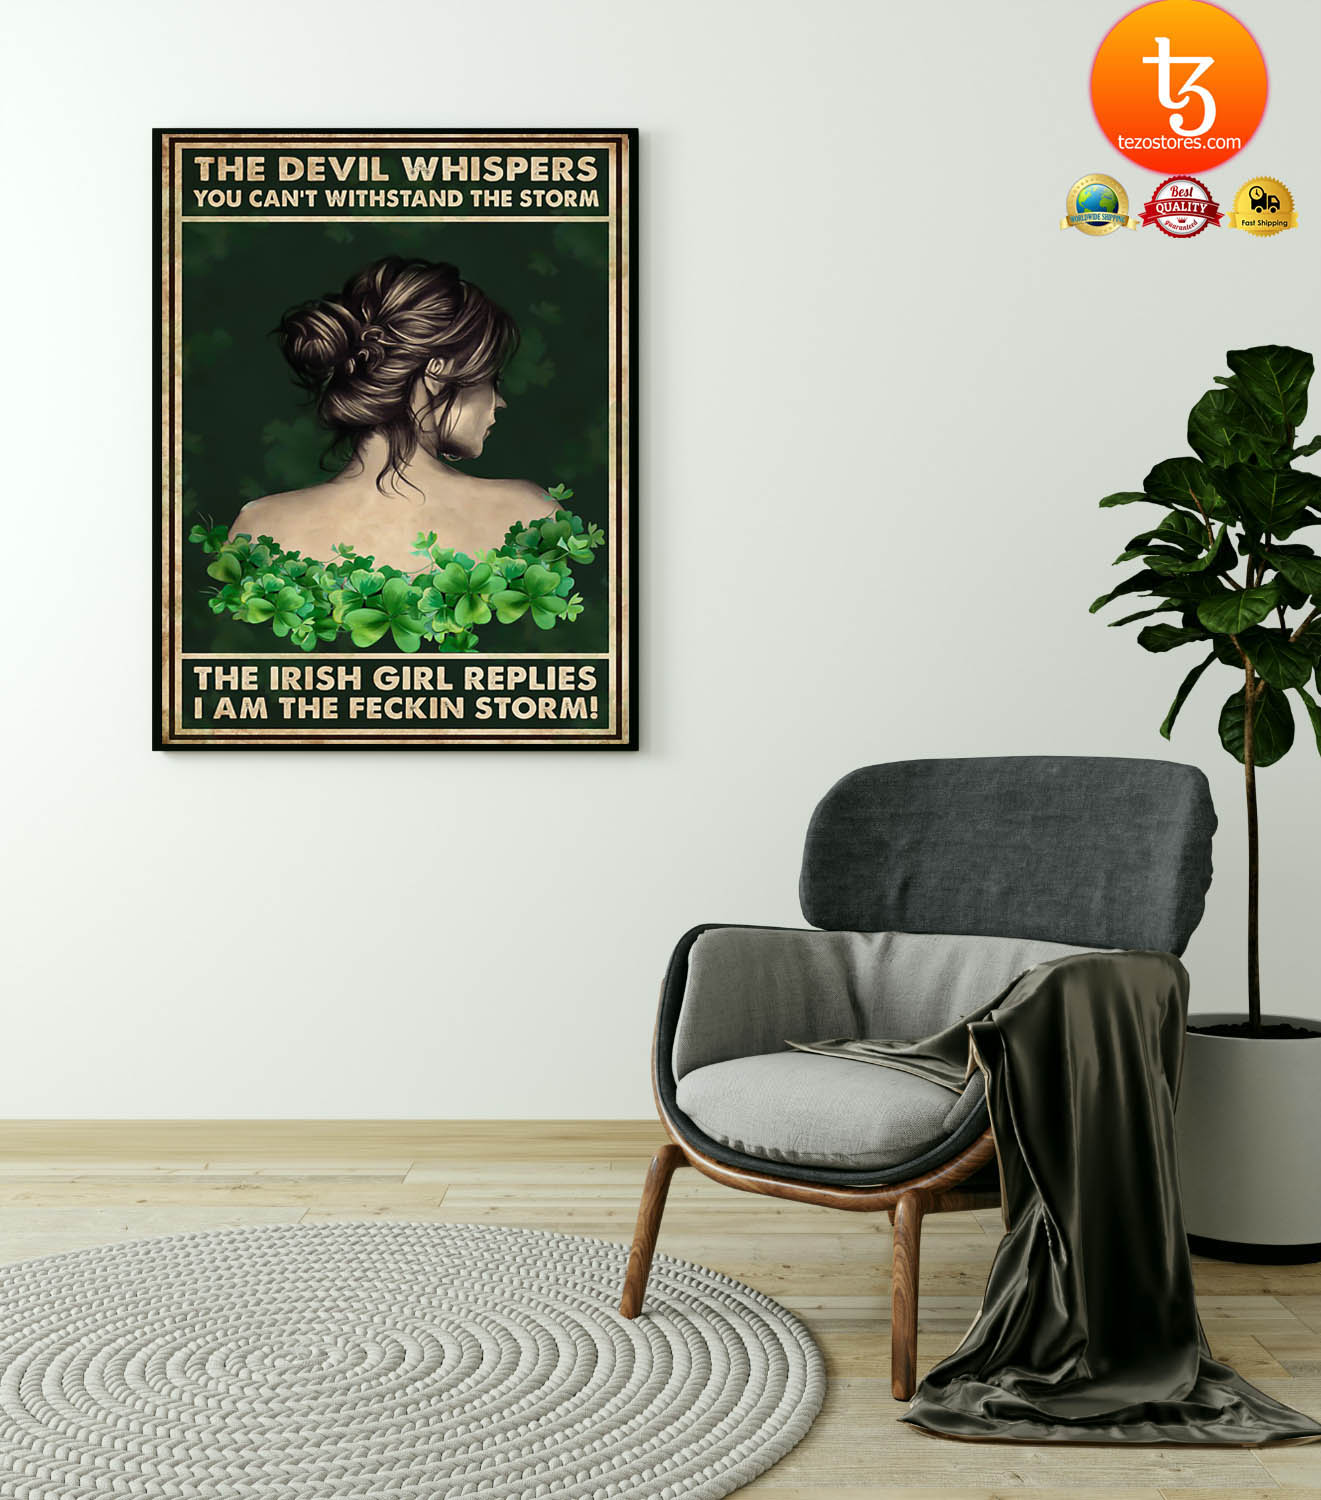 Irish girl the devil whispers you can't withstand the storm poster 23